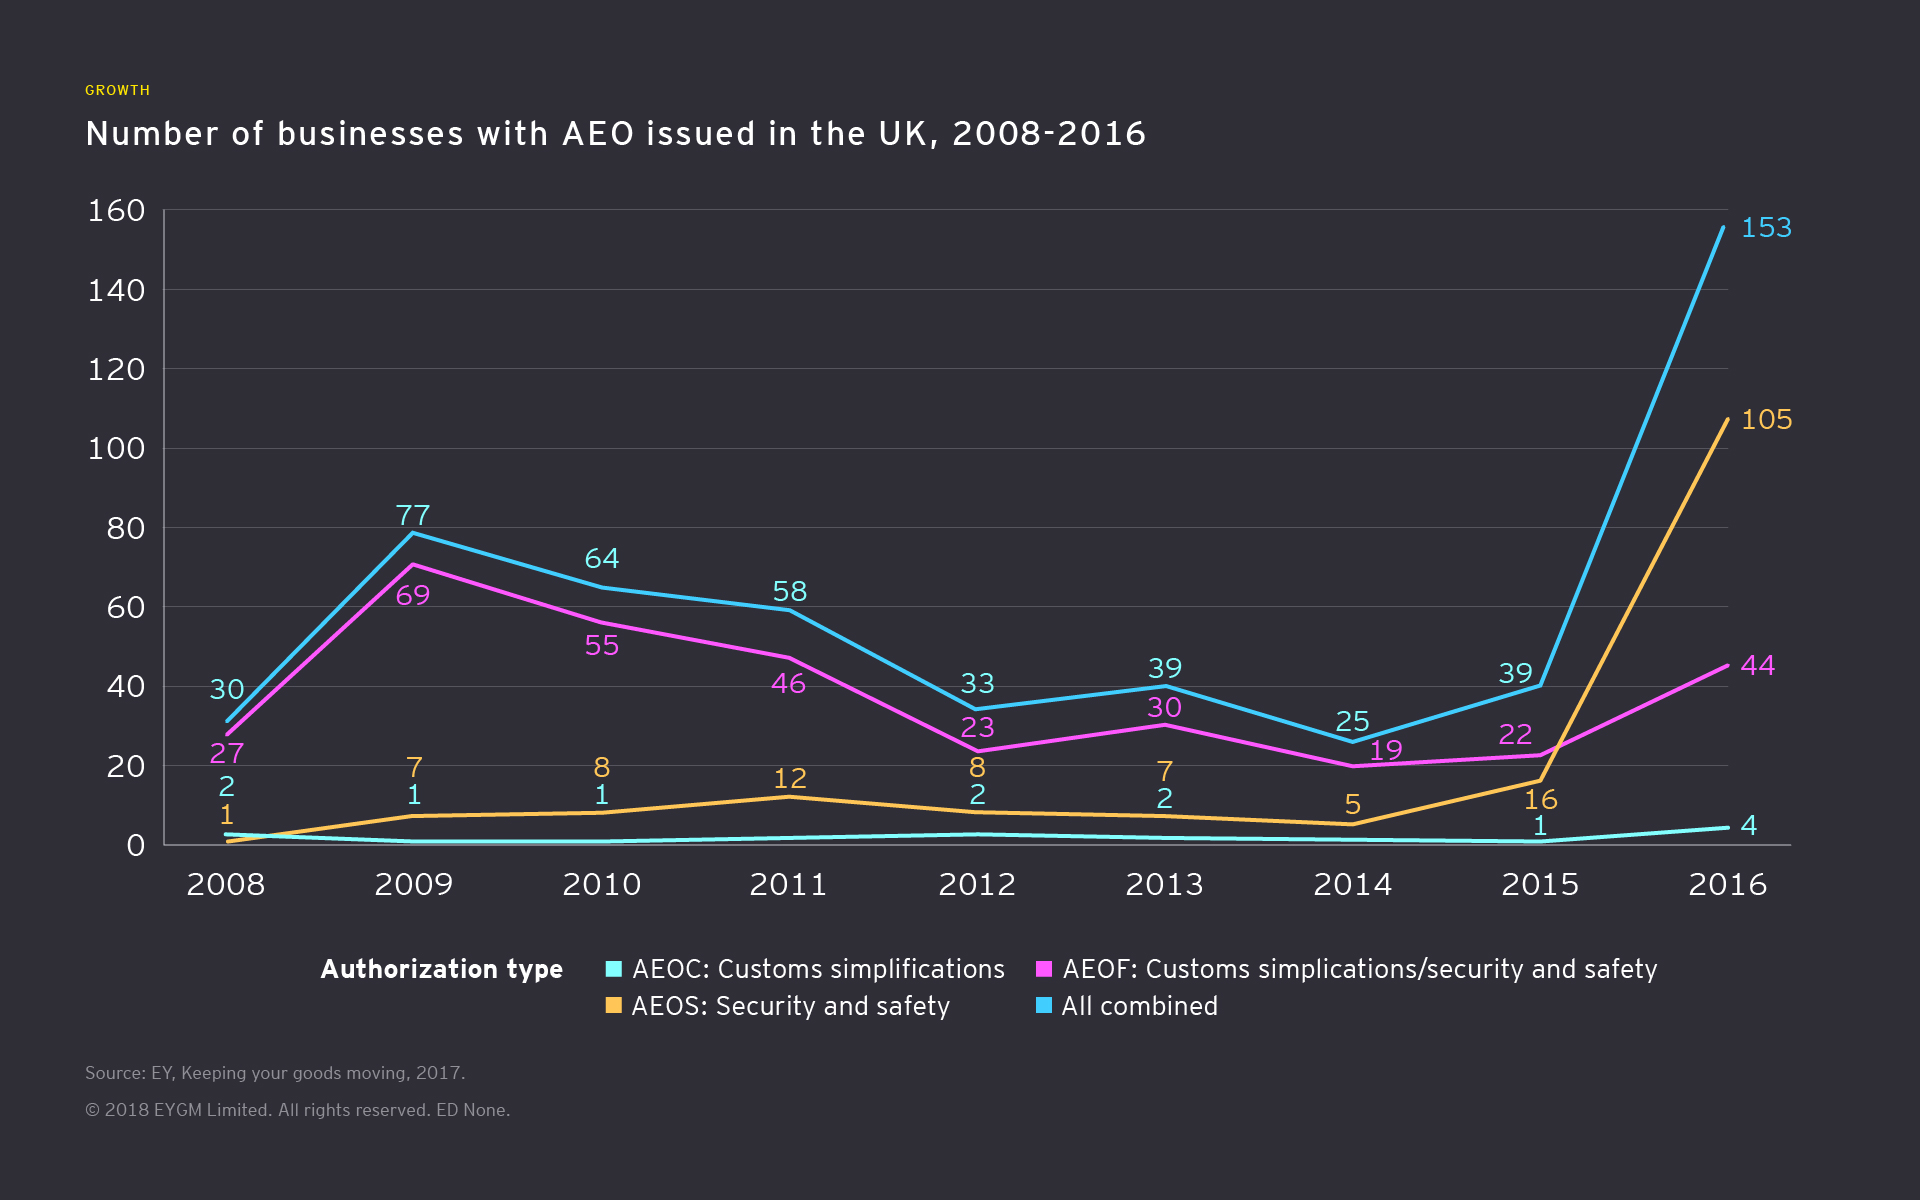 Number of businesses issued with AEO in the UK